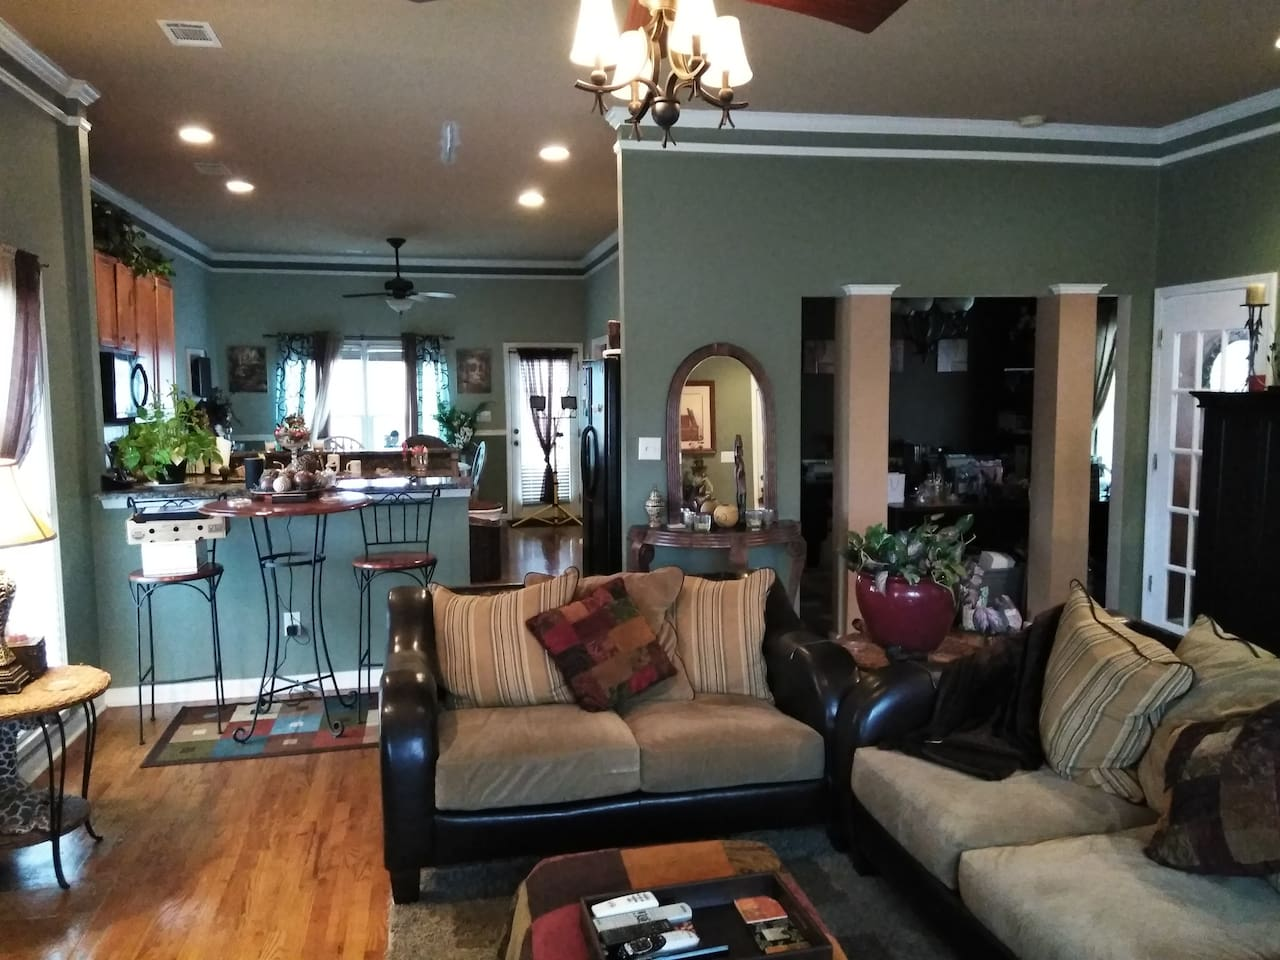 Very spacious living room and kitchen area with access to outside deck.